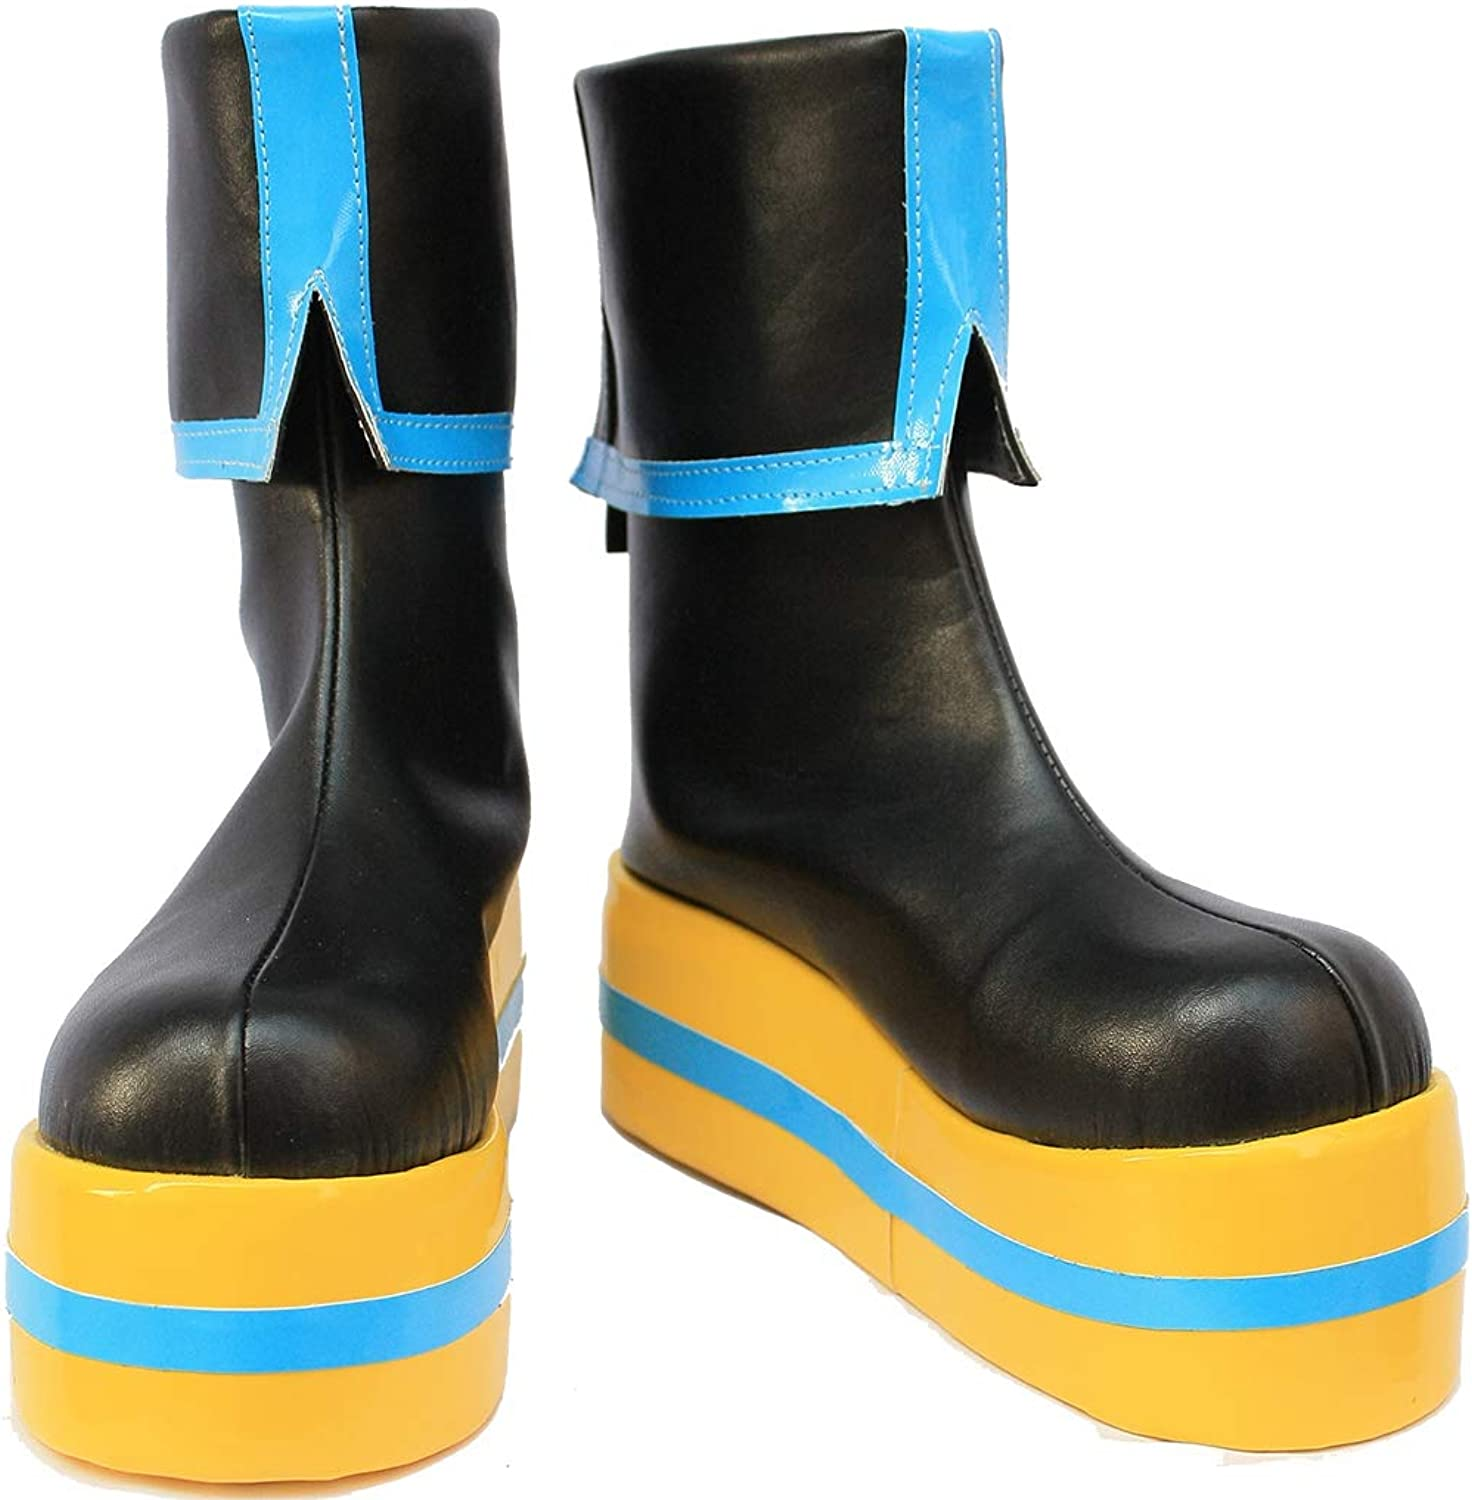 Cosplay Boots shoes for Vocaloid Project Diva Hatsune Miku bluee